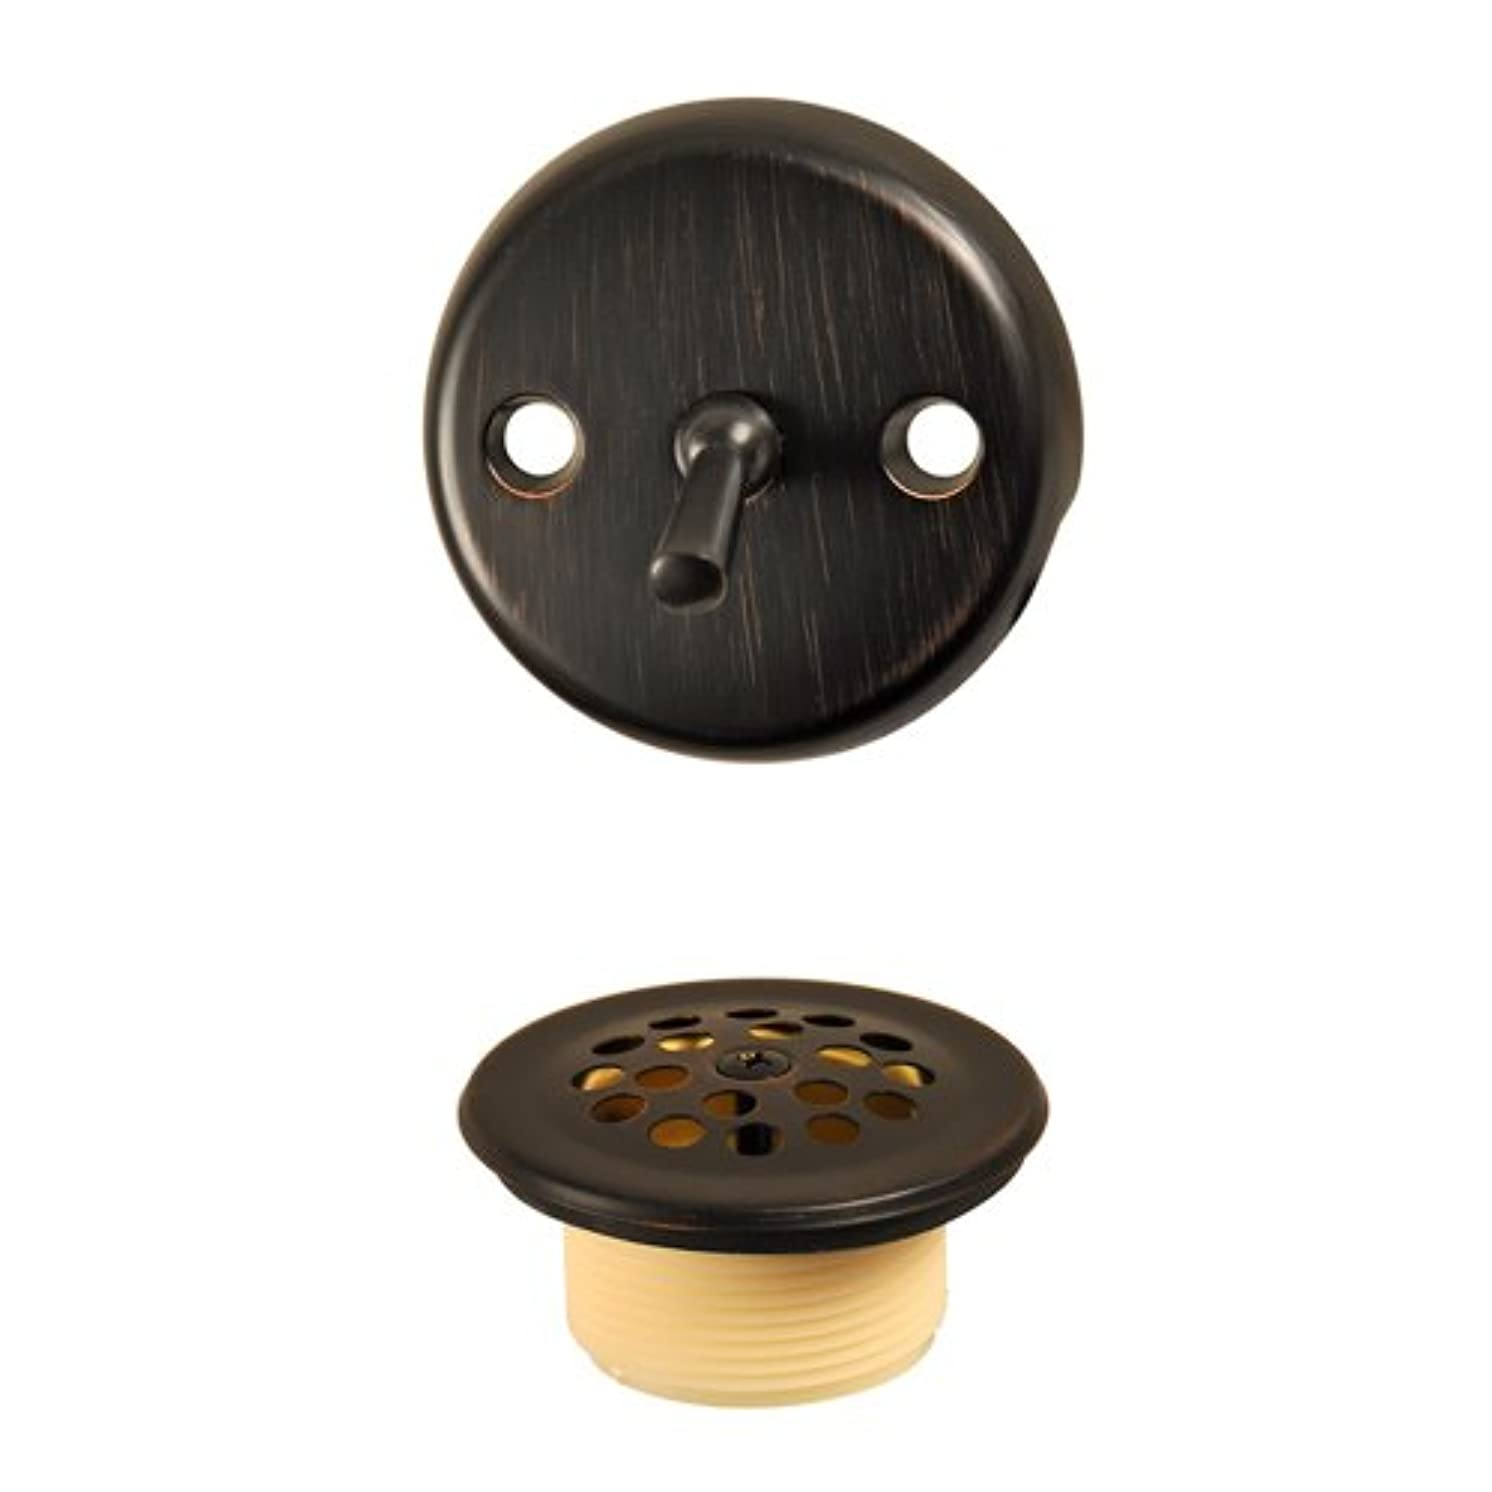 DANCO Trip Lever Tub and Bath Drain Trim Kit with Overflow Plate, Oil Rubbed Bronze, 1-Pack (10580)